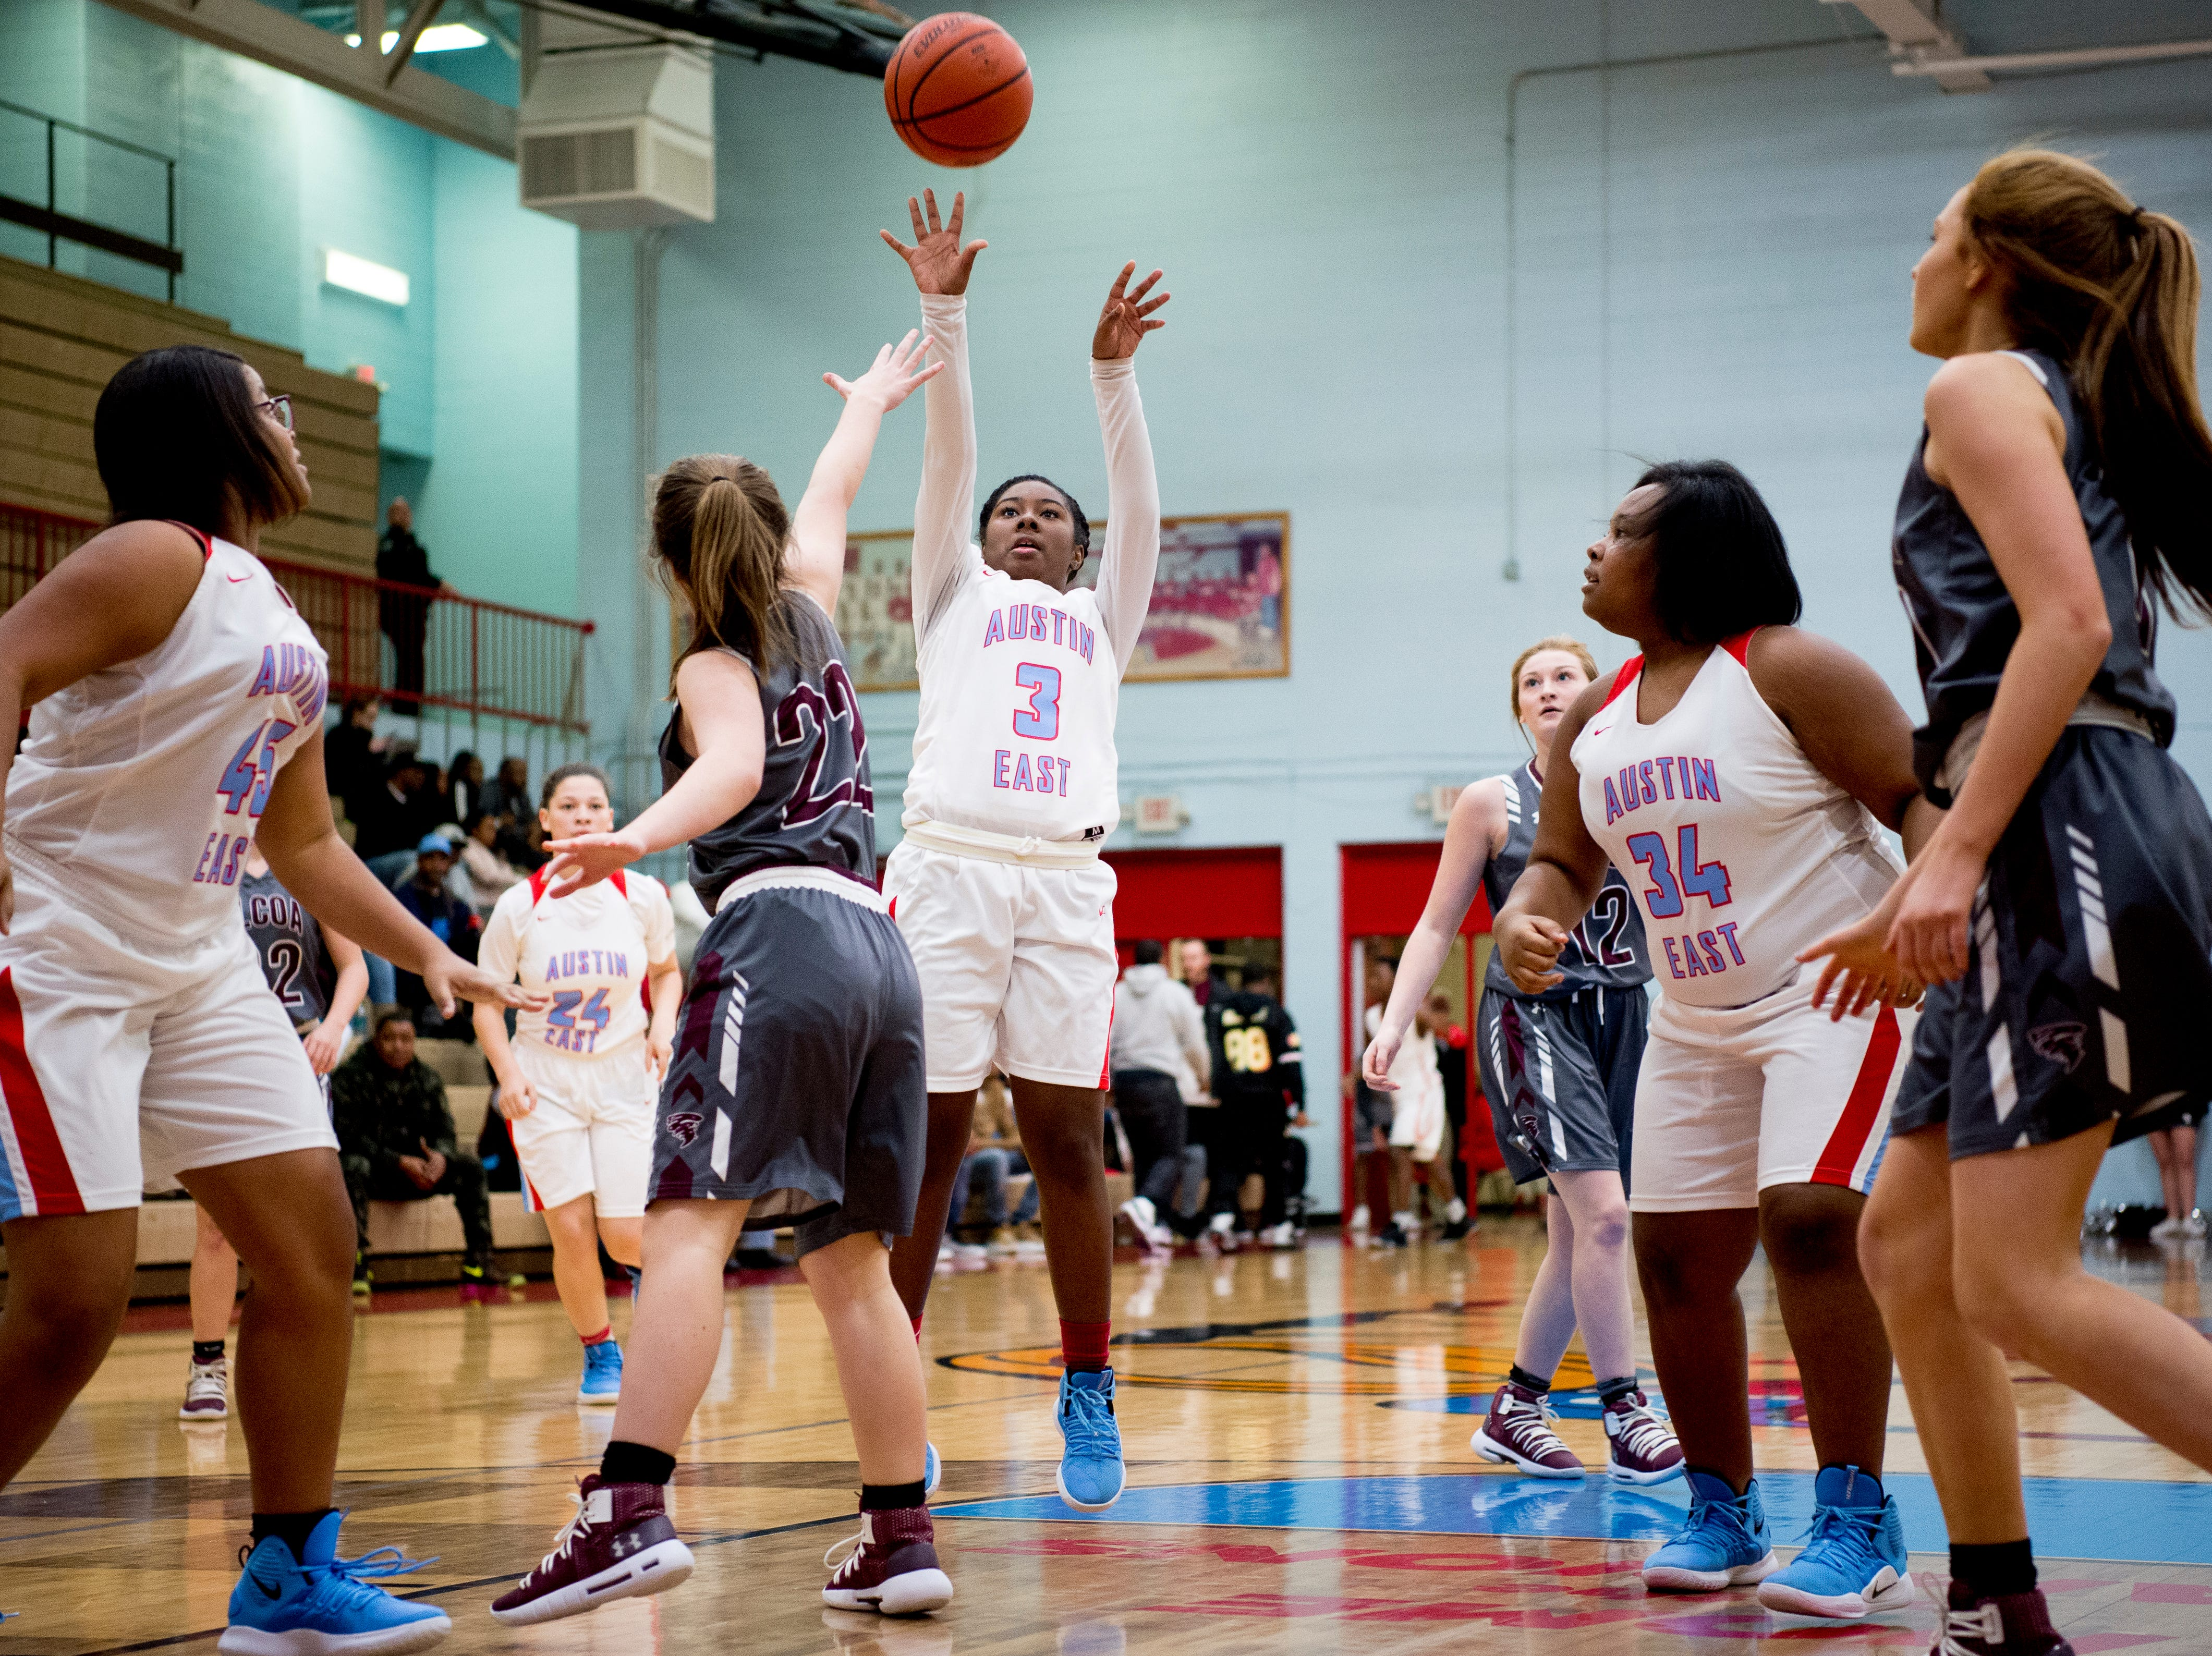 Austin-East's Saniya Andrews (3) shoots the ball during a game between Austin-East and Alcoa at Austin-East High School in Knoxville, Tennessee on Friday, January 18, 2019.